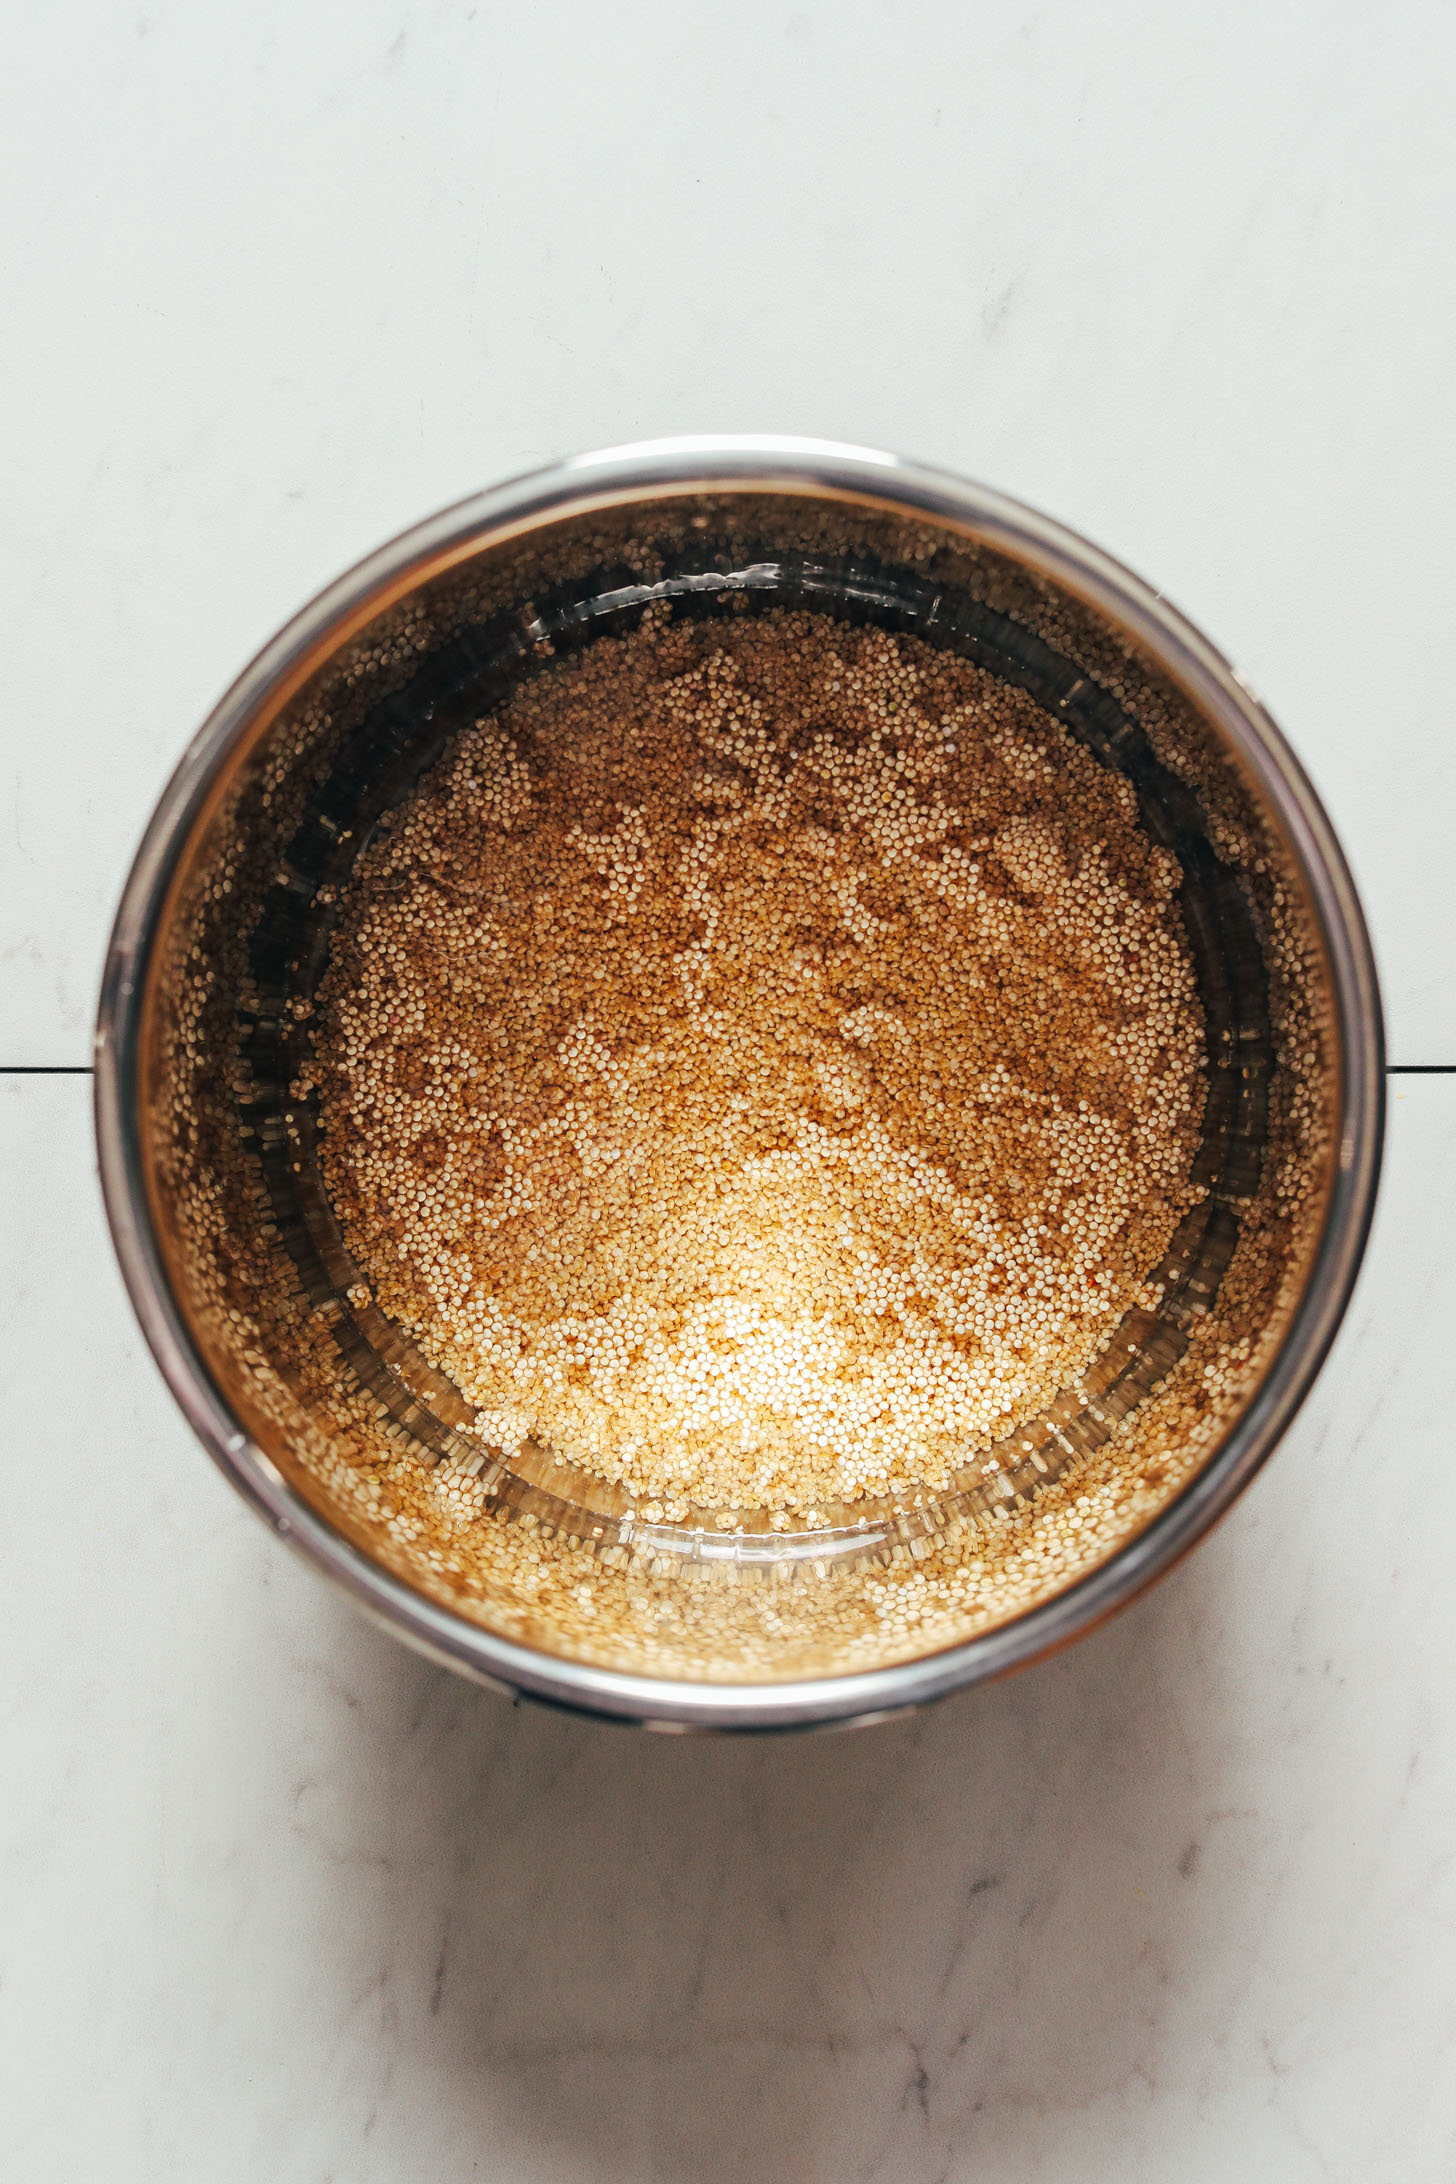 Quinoa and water in an Instant Pot